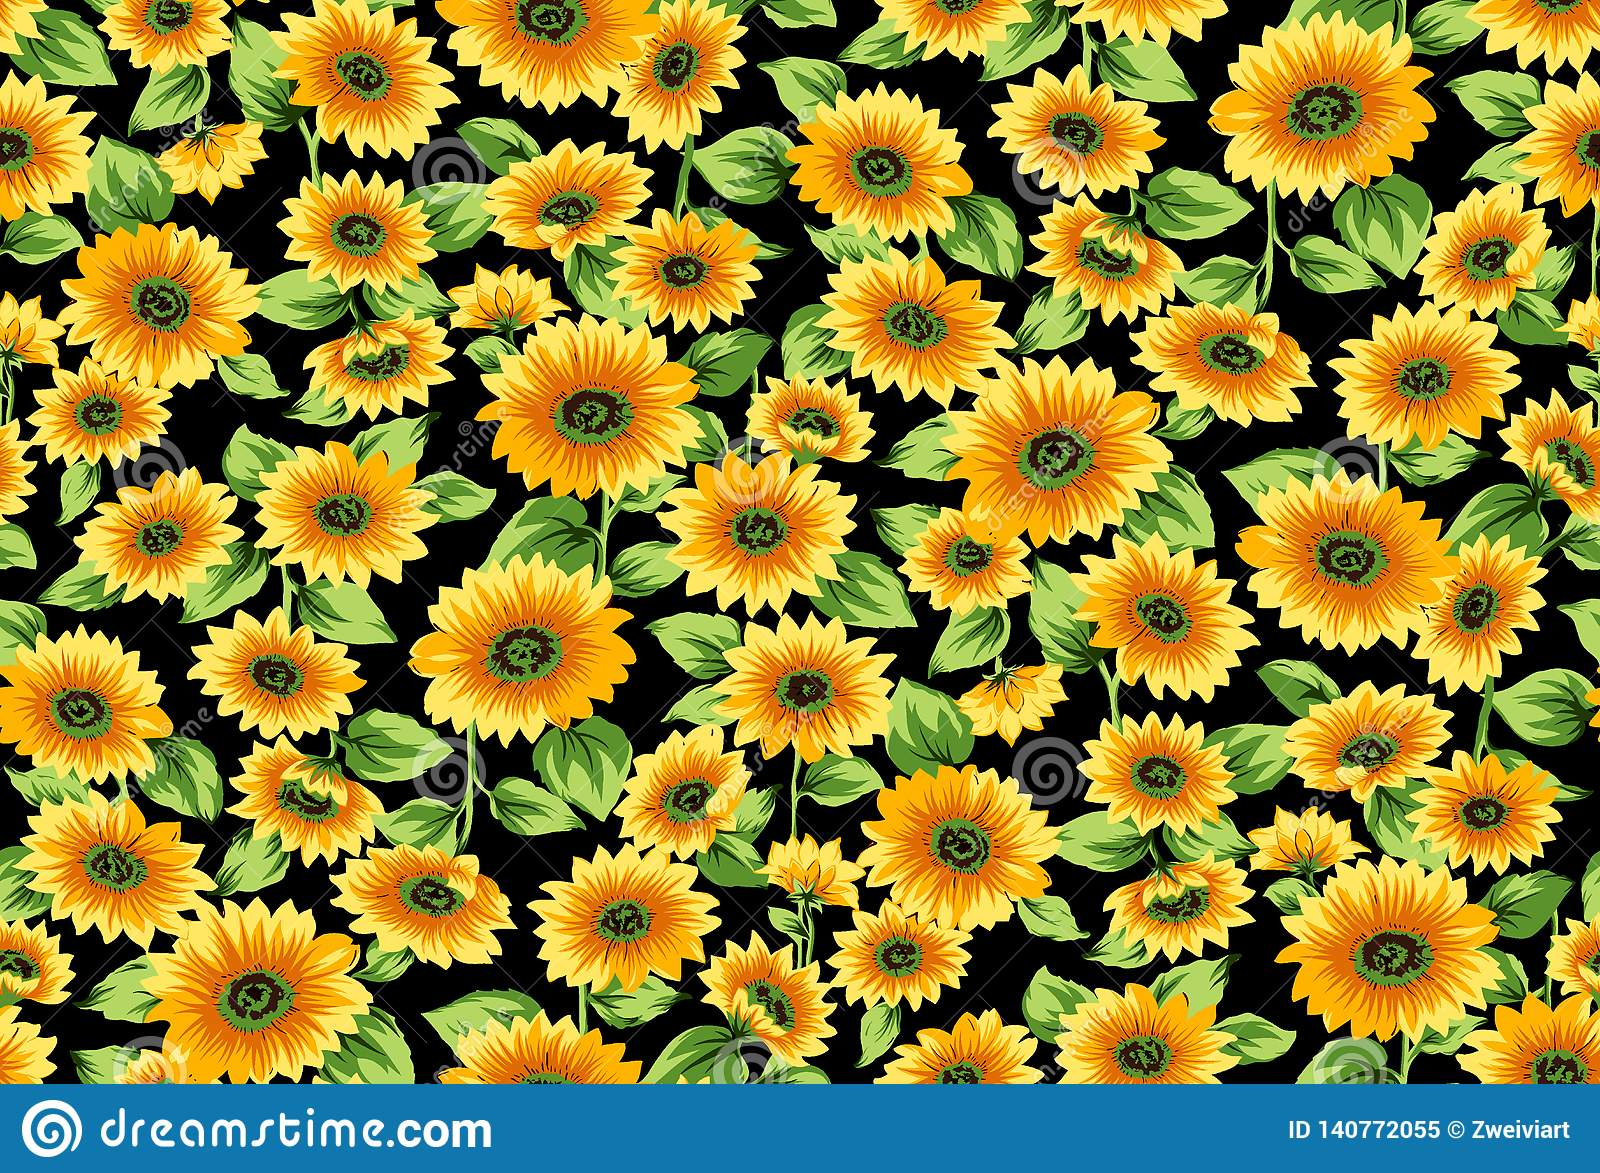 seamless sunflowers pattern black background vintage color print fashion textile wallpaper seamless sunflowers 140772055